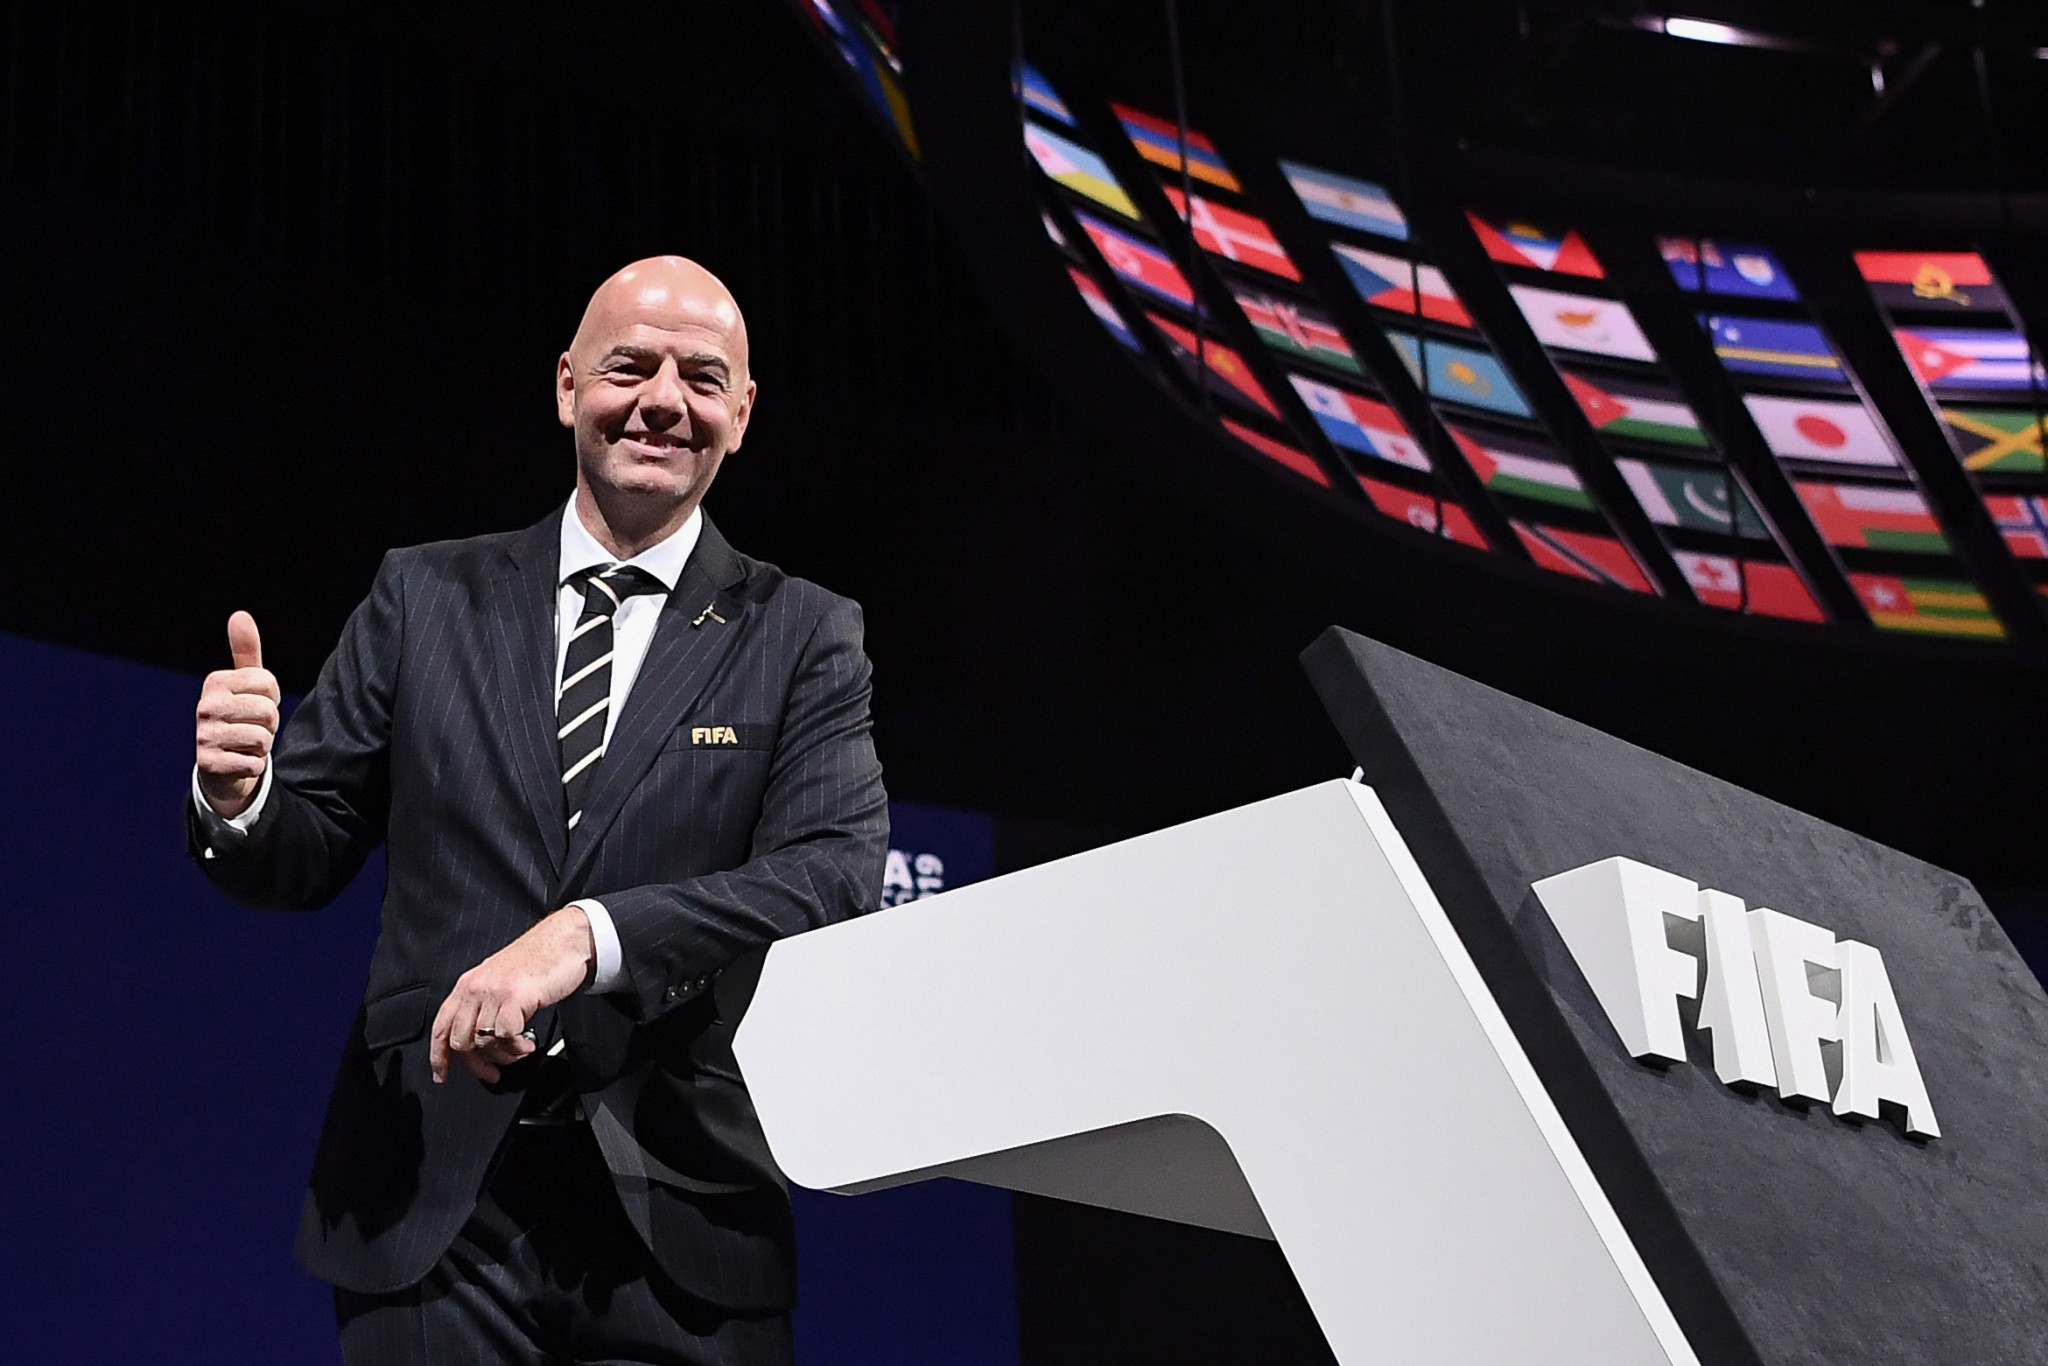 FIFA President Gianni Infantino was re-elected for a second term at the FIFA Congress on Tuesday but already the organisation is embroiled in a new corruption scandal ©Getty Images